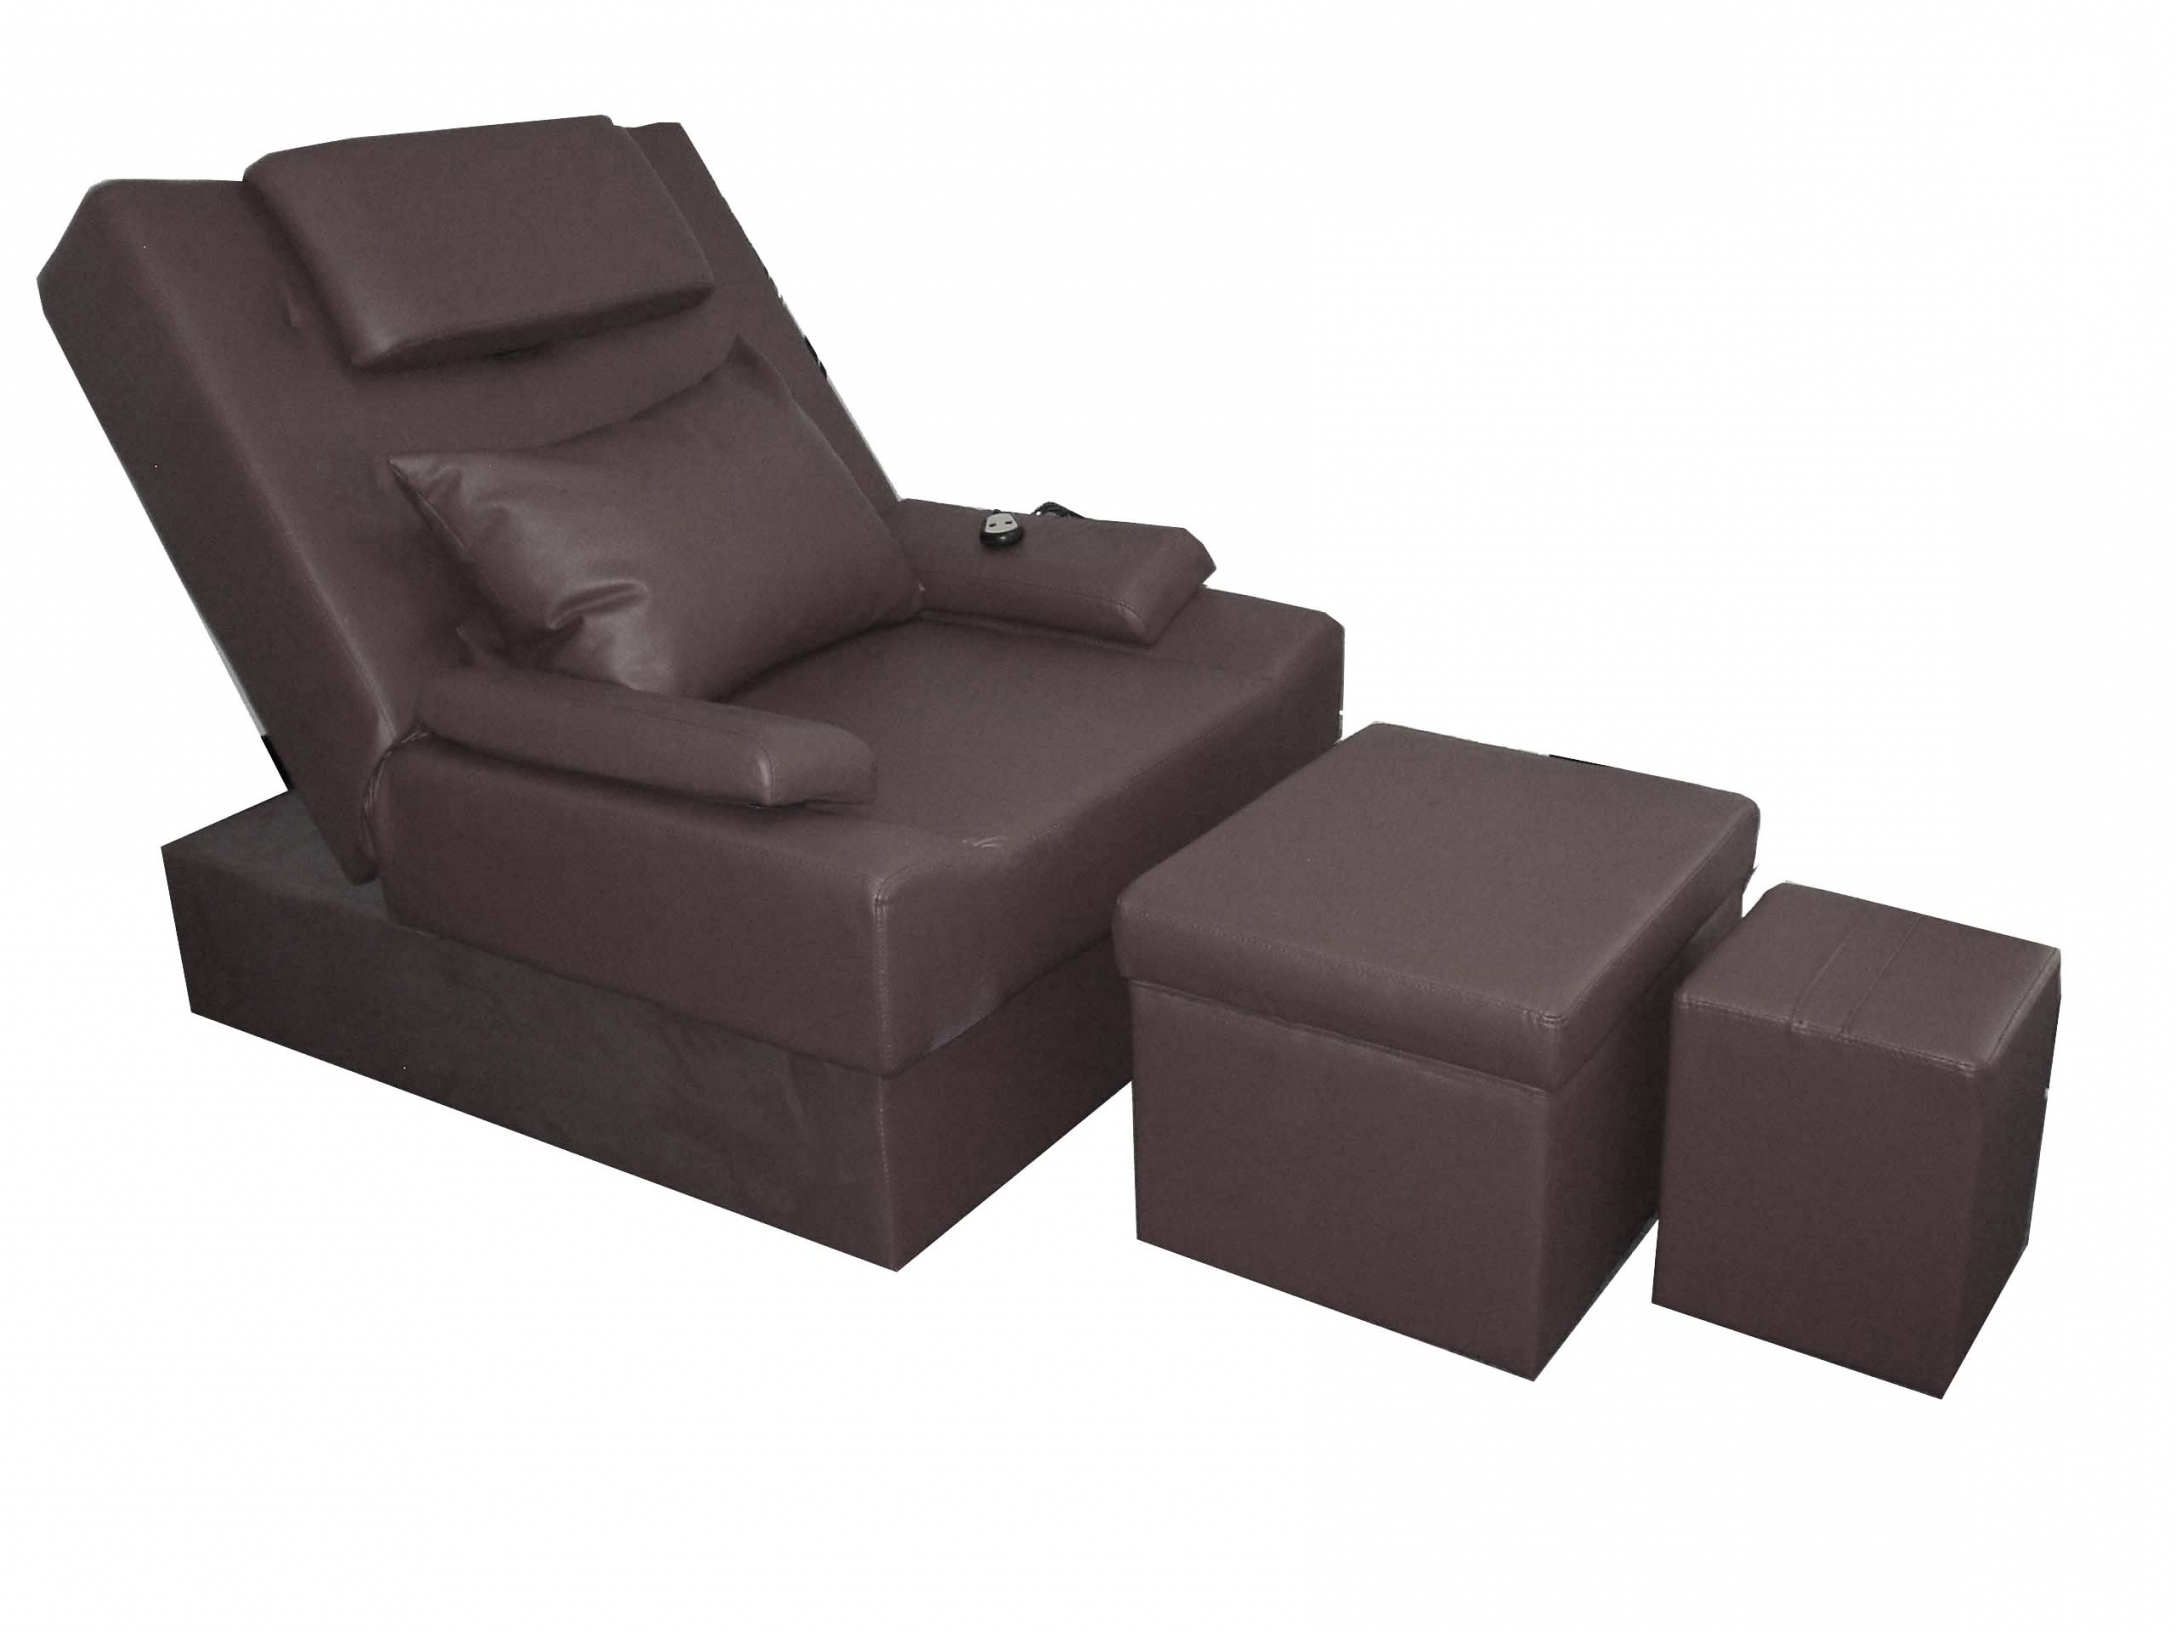 Most Current Foot Massage Chairs Inside Foot Massage Sofas (View 11 of 15)